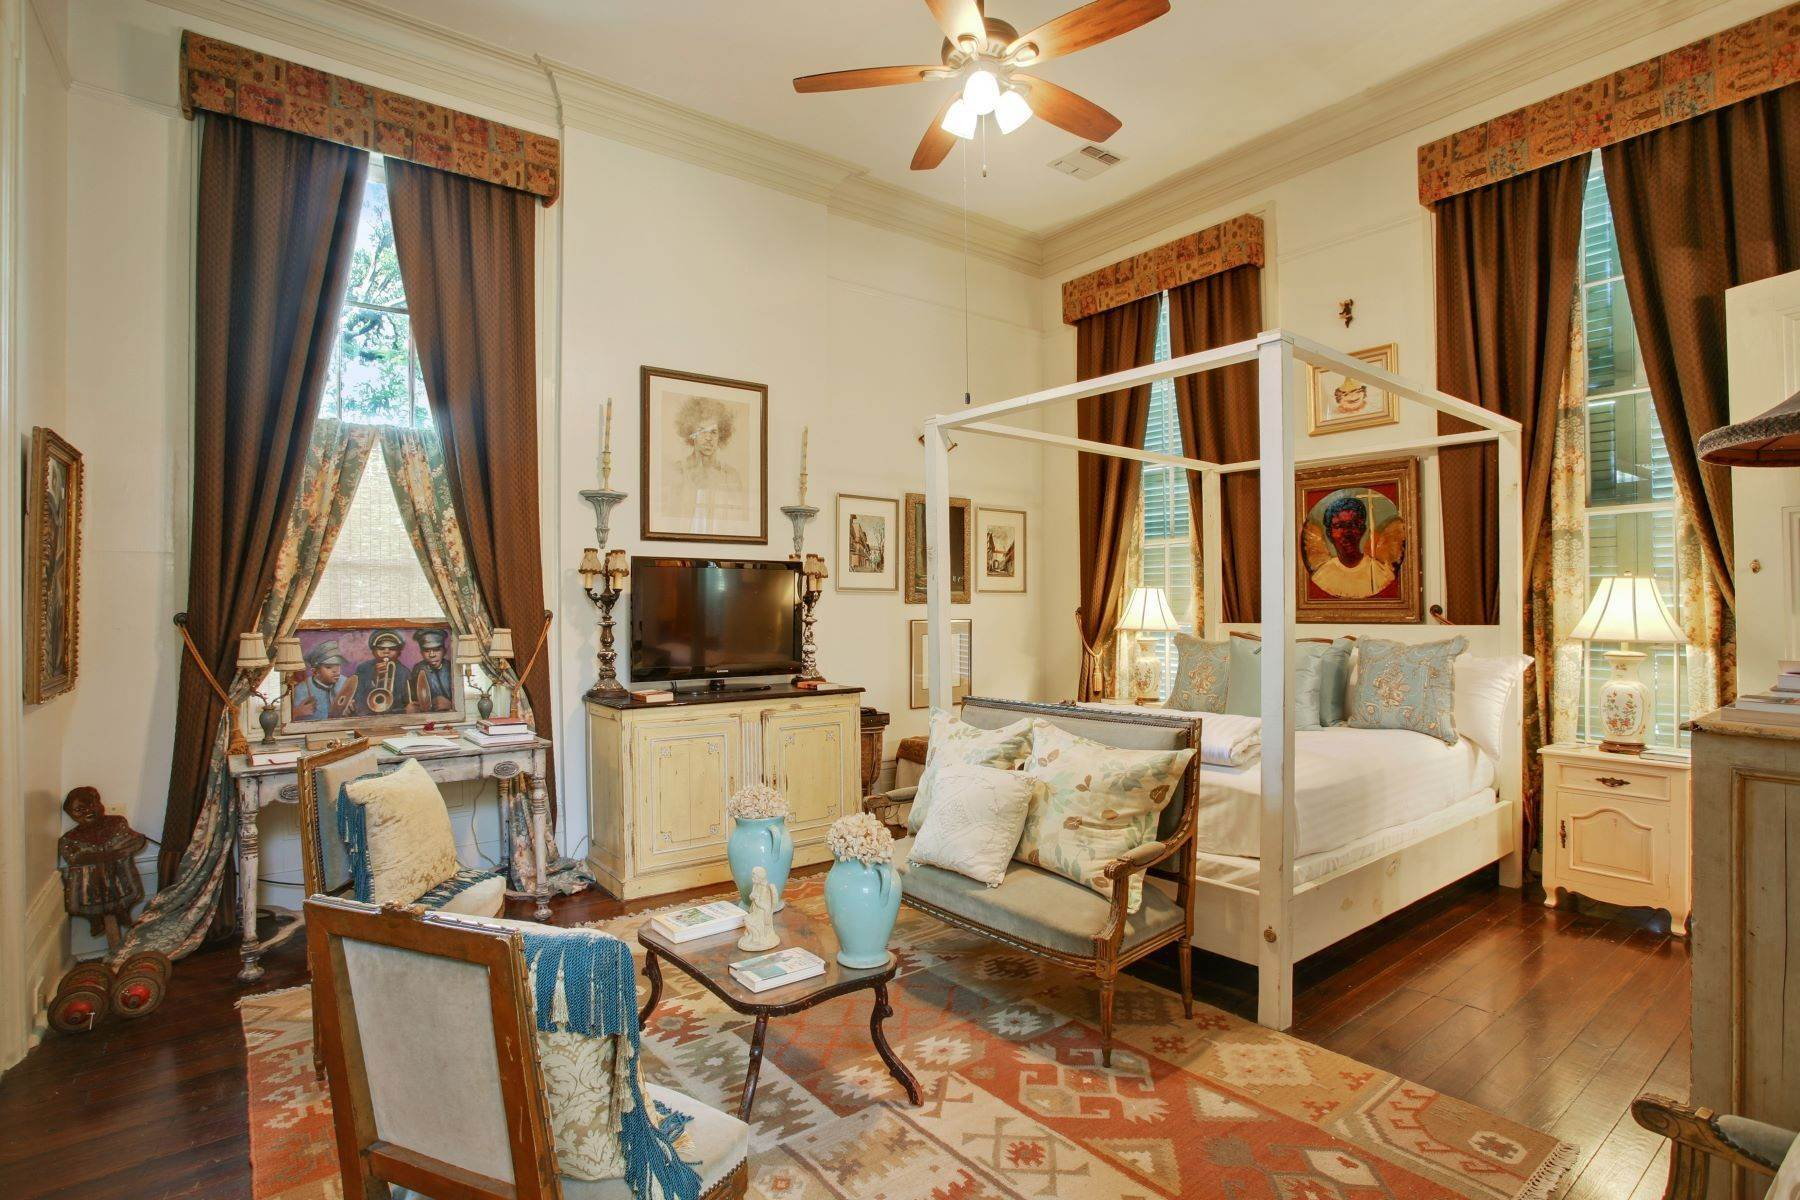 11. Single Family Homes for Sale at 1216 CAMP Street 1216 Camp St New Orleans, Louisiana 70130 United States